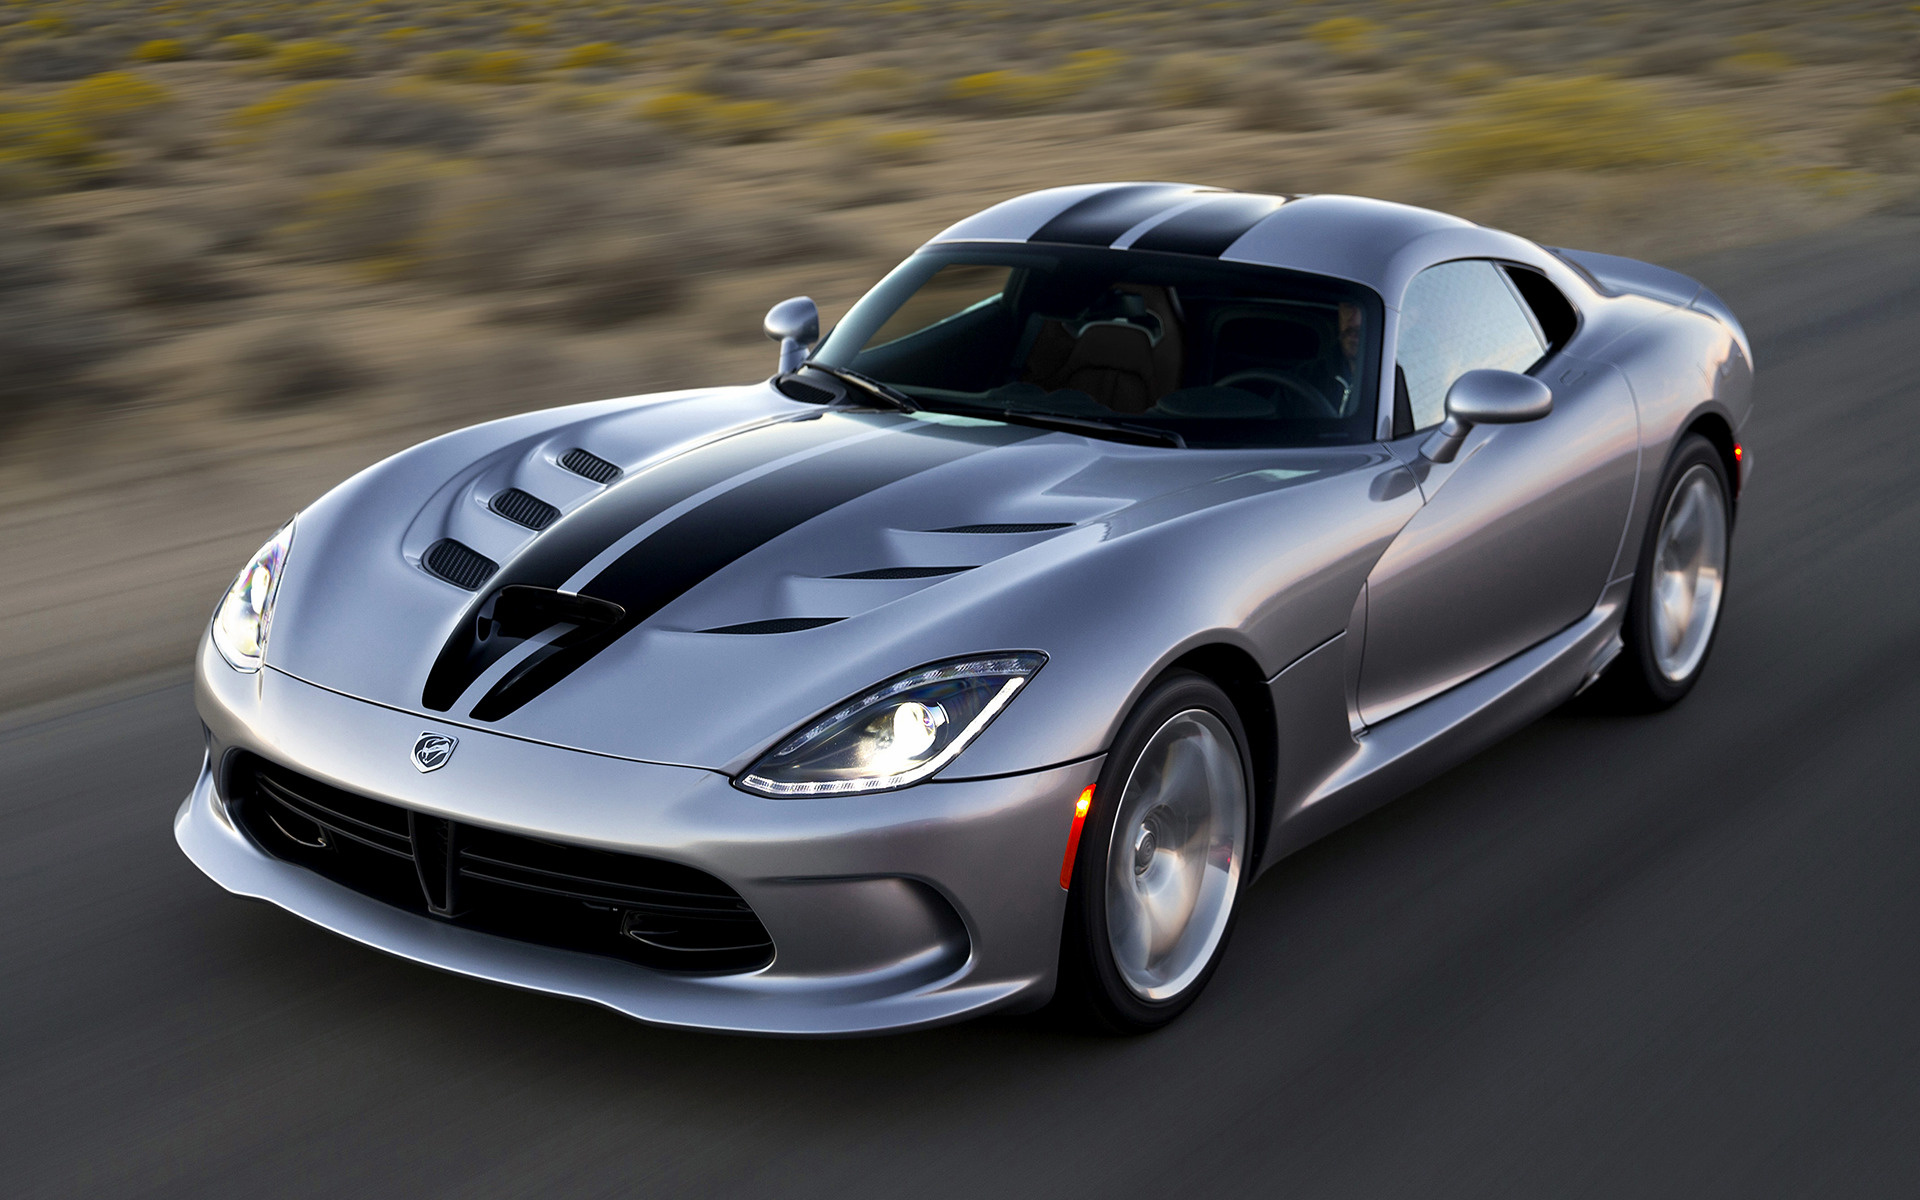 2015 Dodge Viper SRT   Wallpapers and HD Images Car Pixel 1920x1200